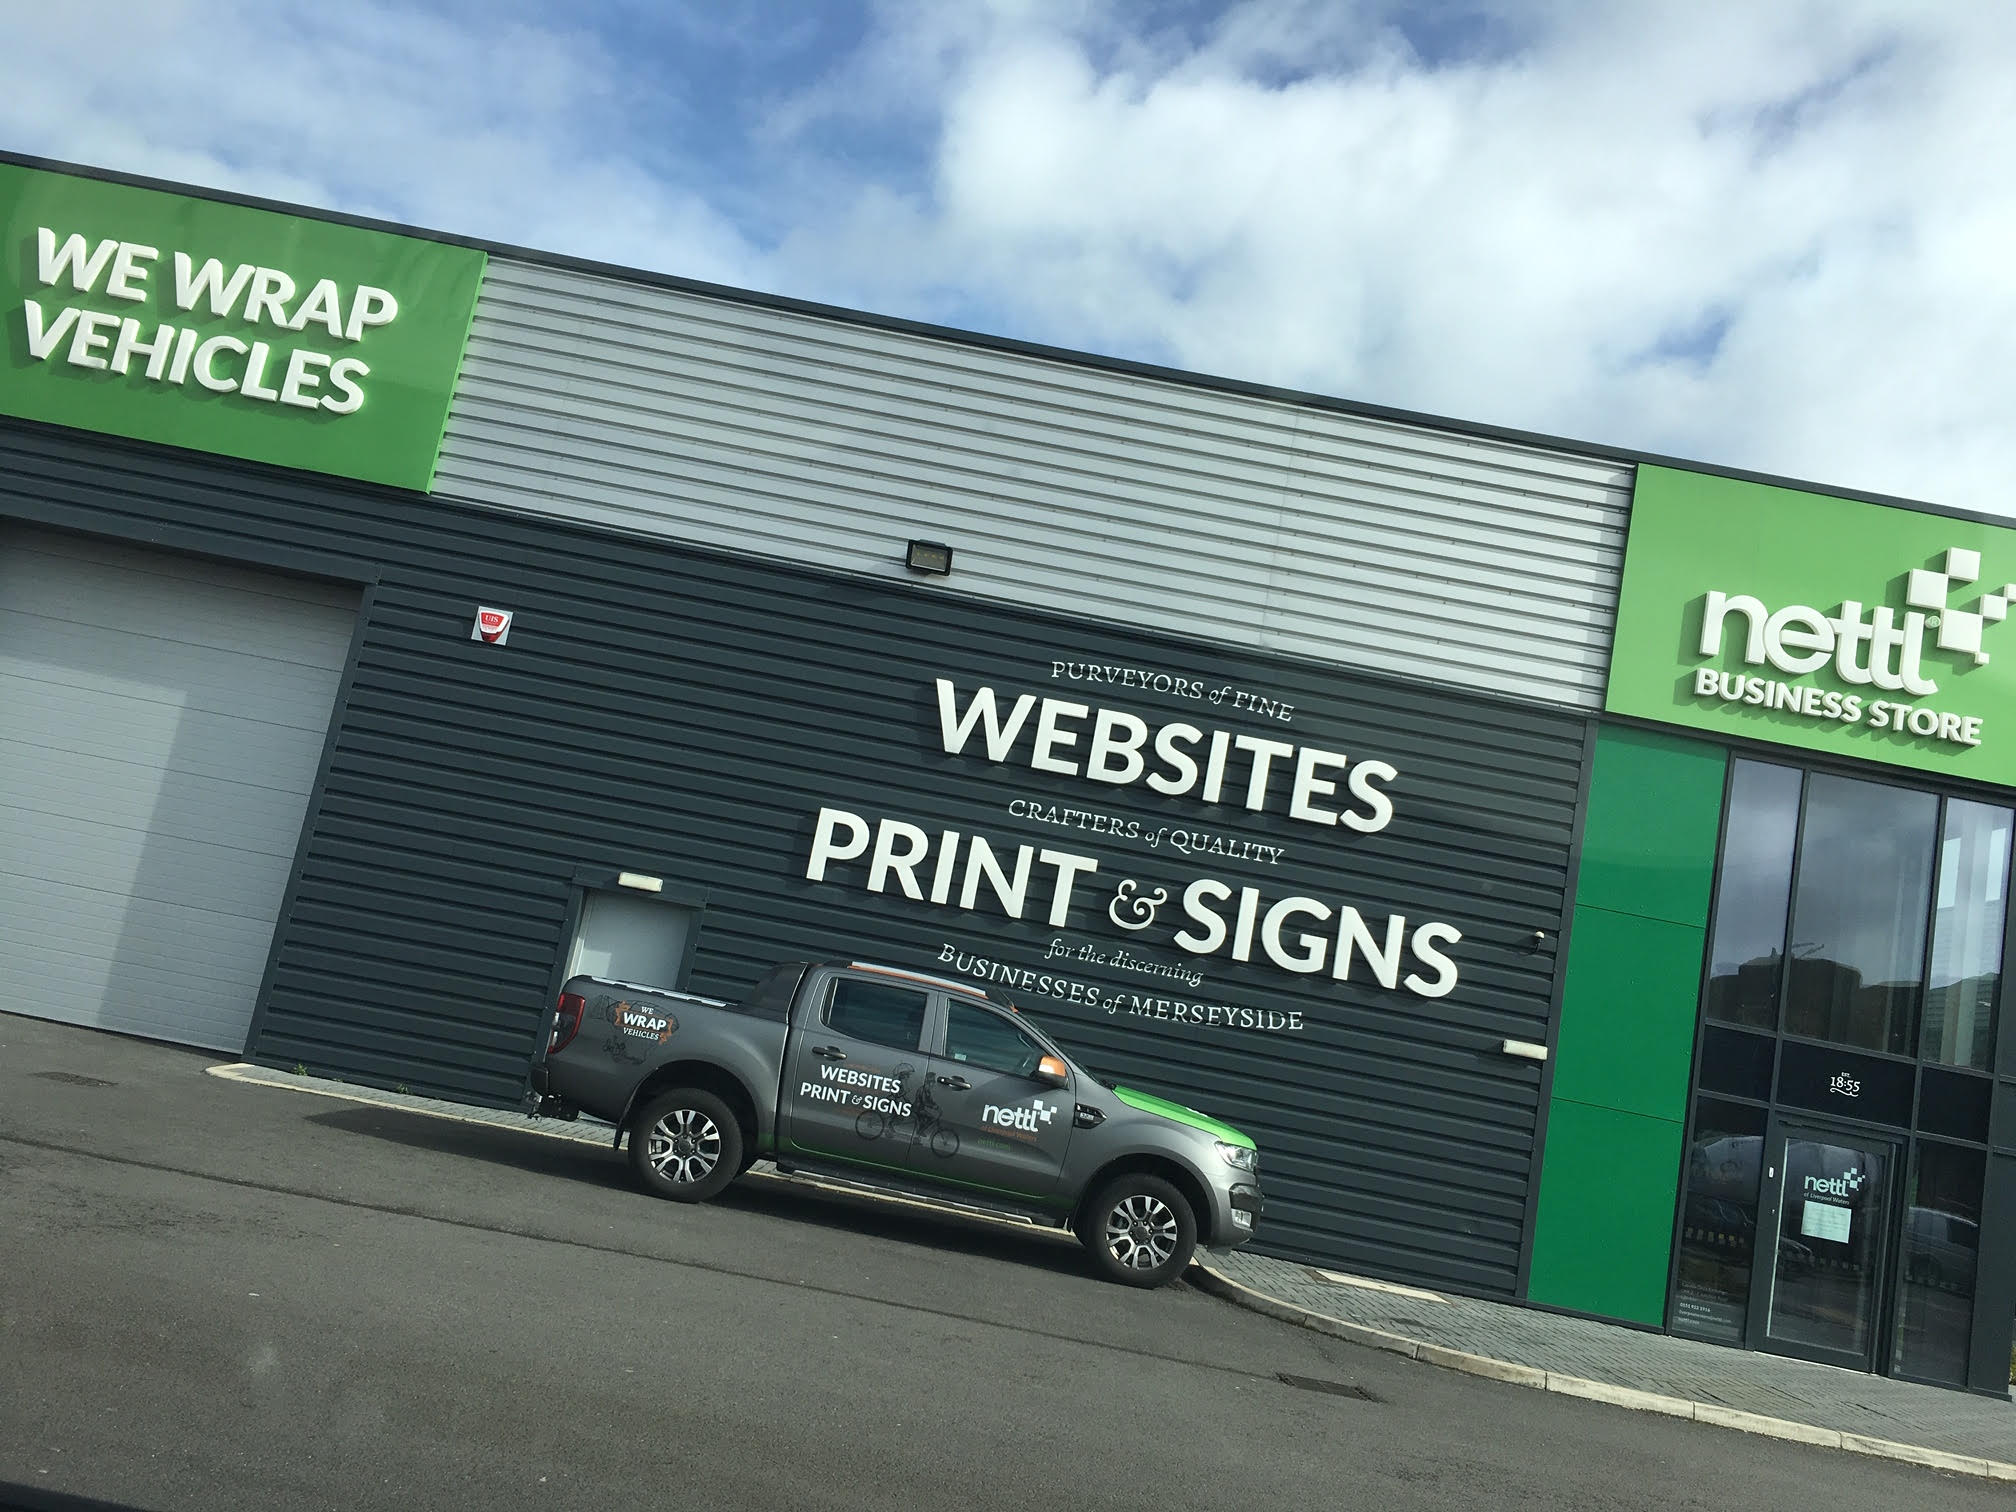 Nettl of Liverpool Waters